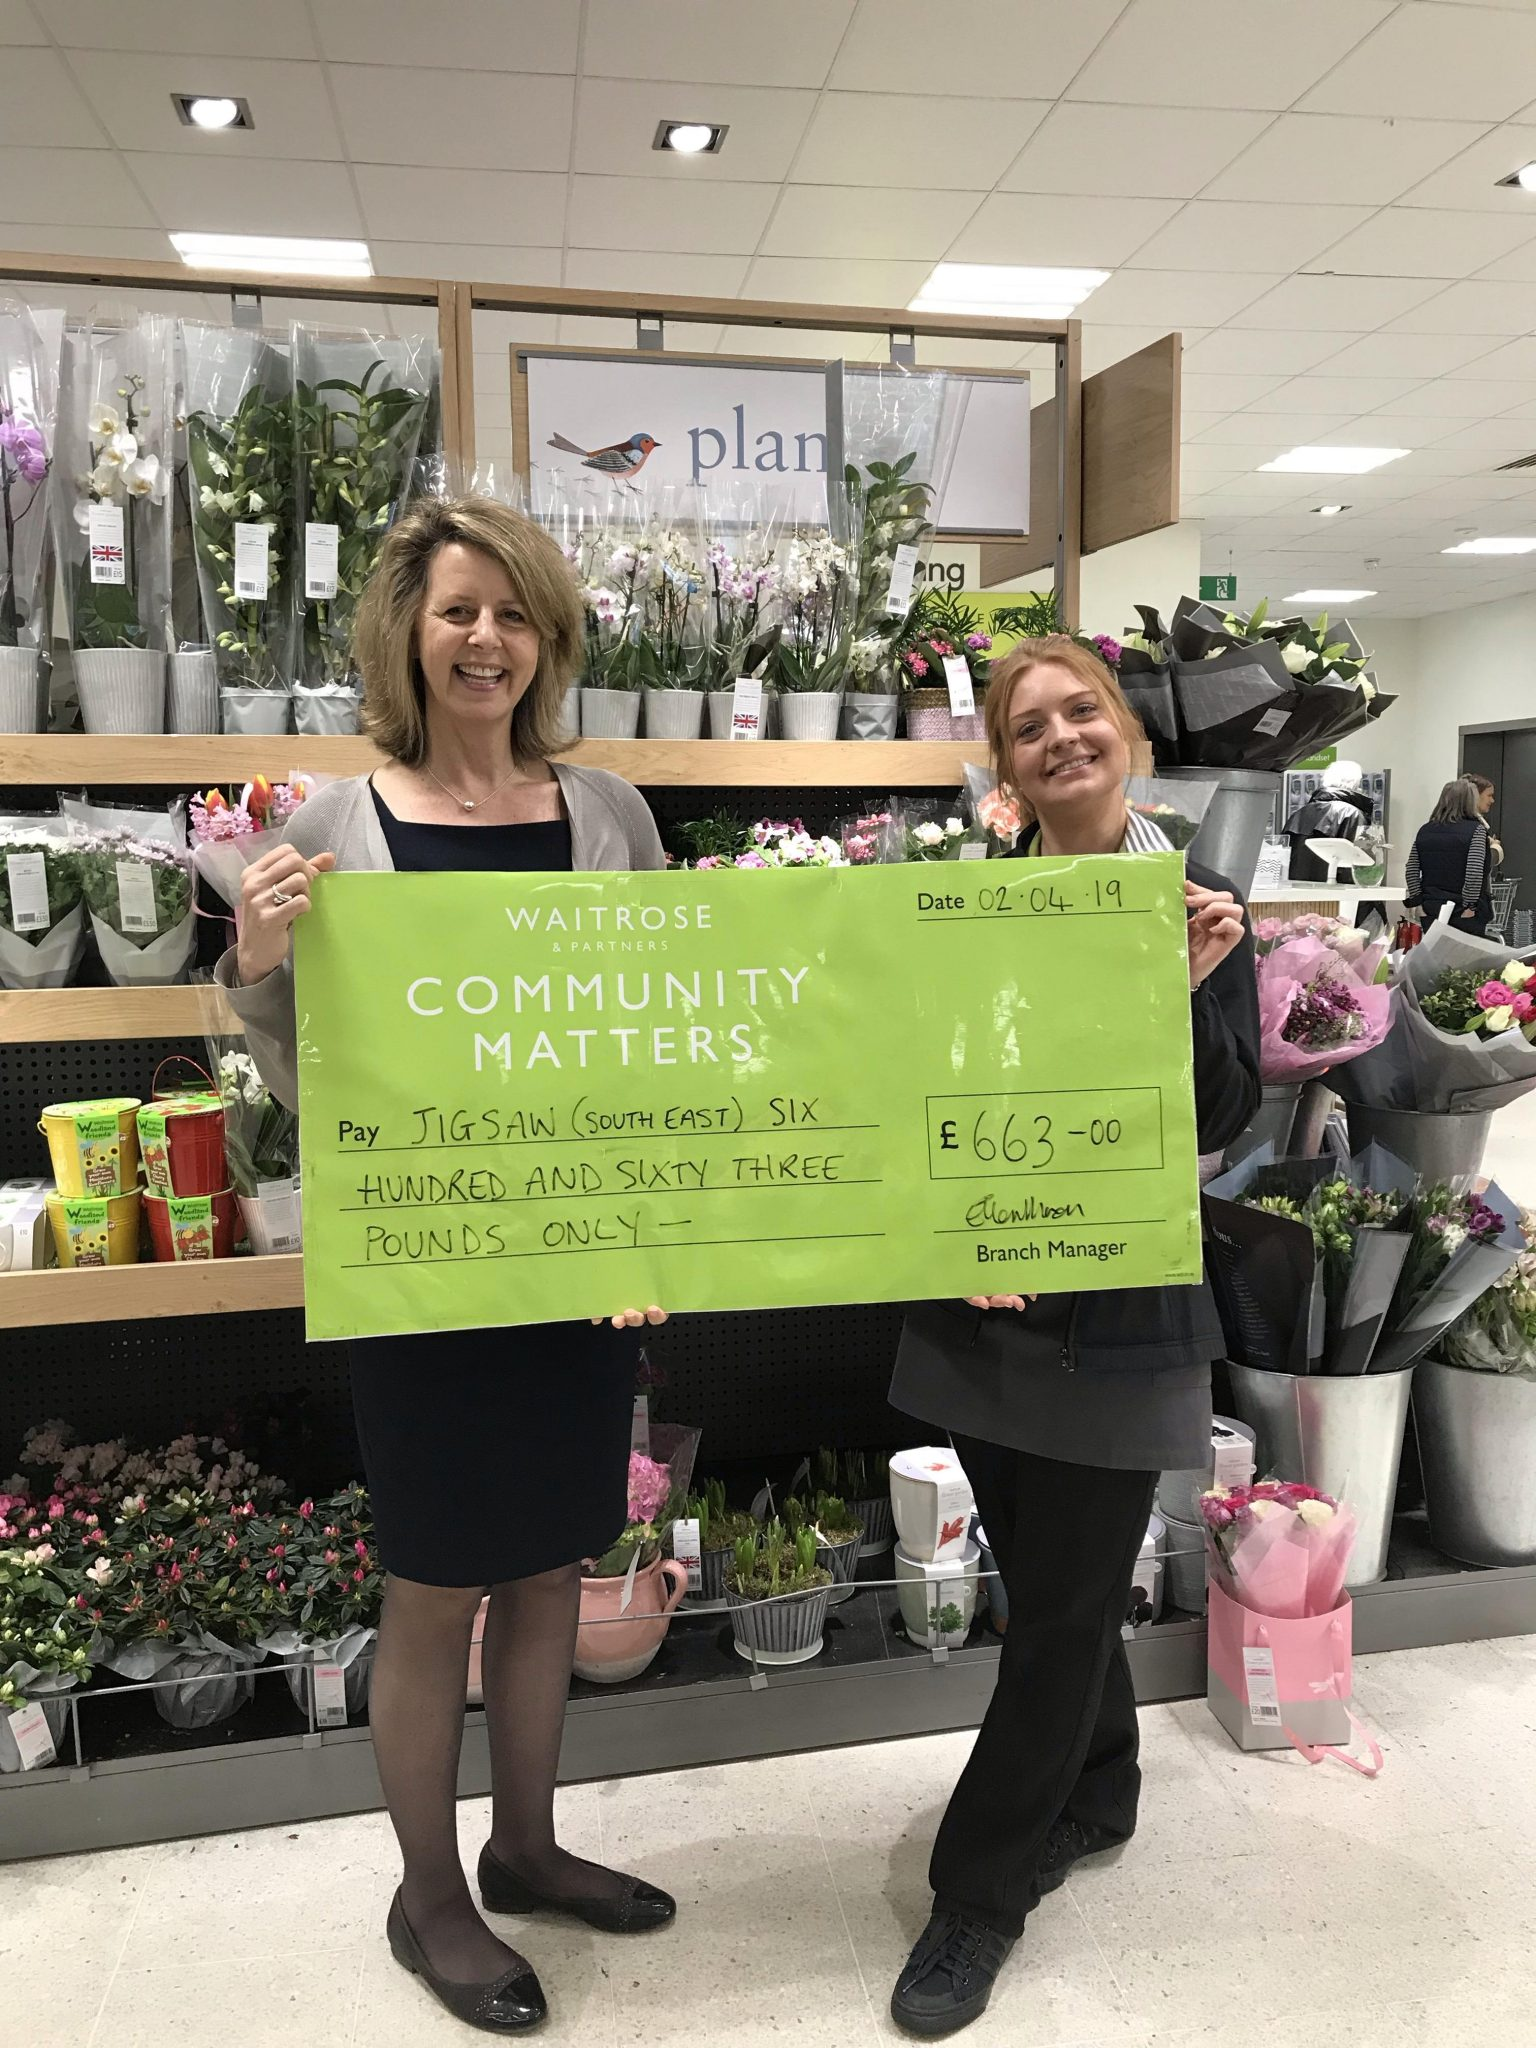 Waitrose Shoppers Show Their Support For Jigsaw